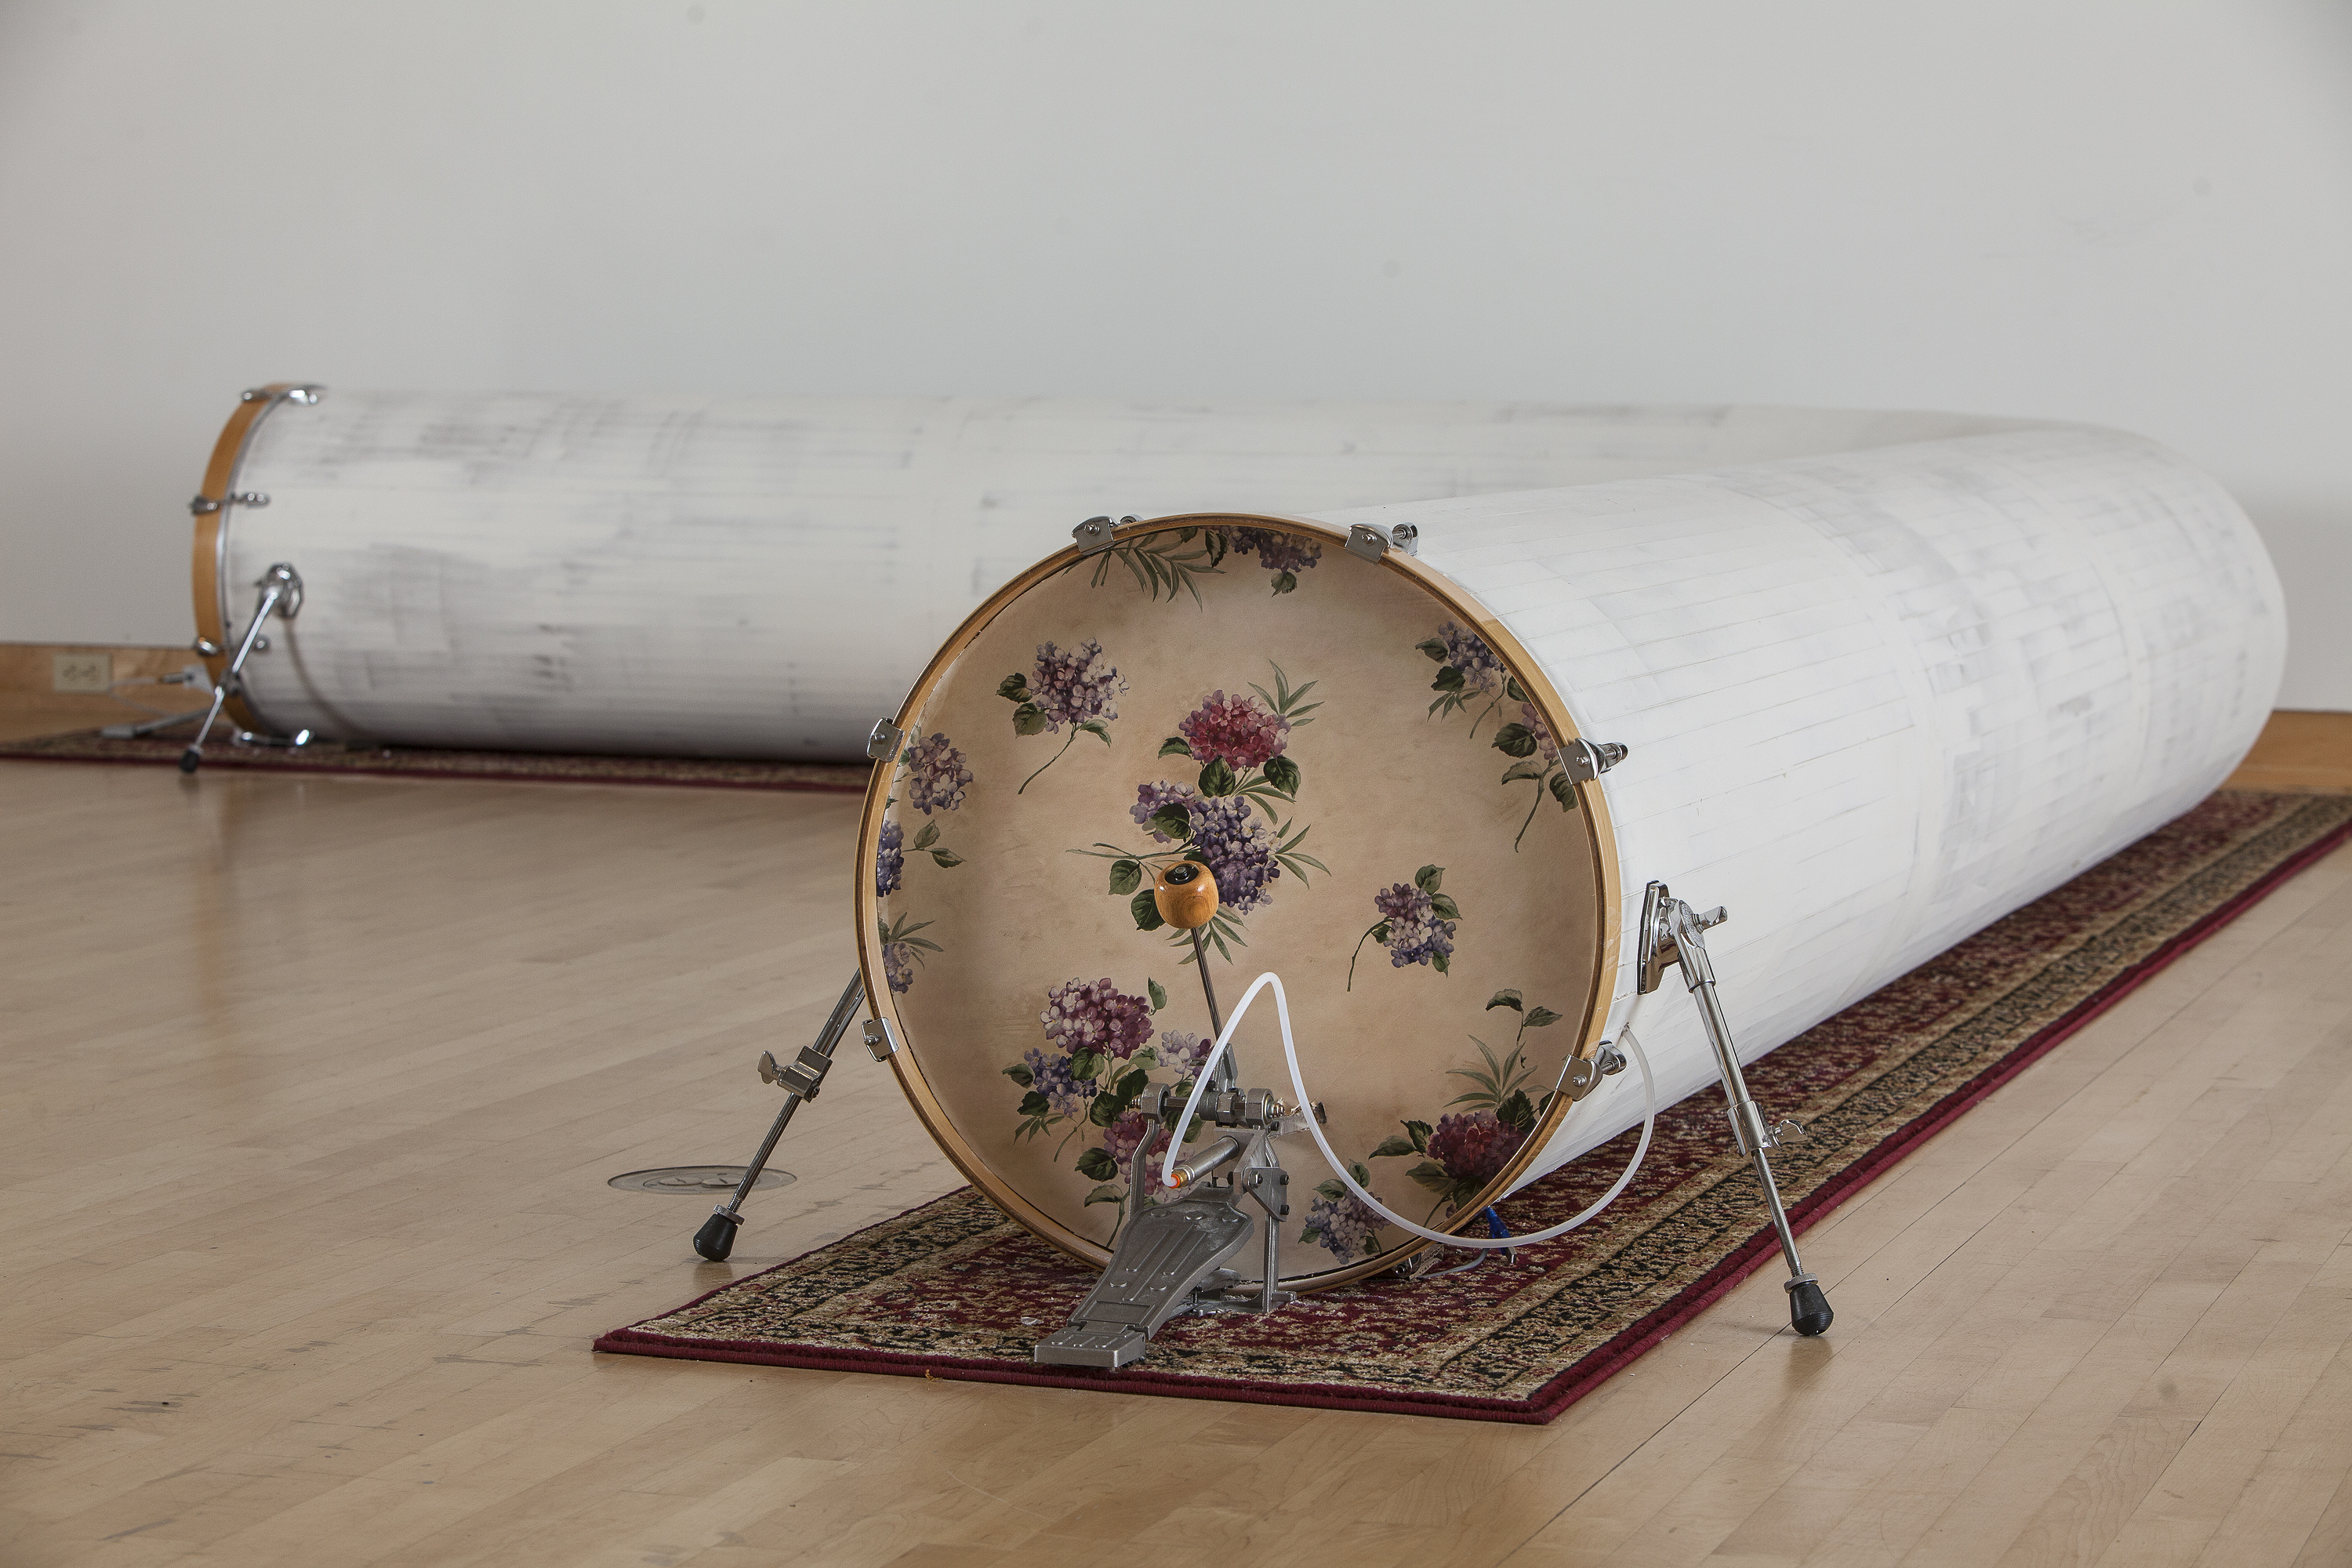 Scott Carter, Safe as Houses, drywall, drum set hardware, wallpaper, carpet, air compressors, proximity sensors, micro controllers, pneumatic bass drum pedals (2015)- photo by Jeff Machtig